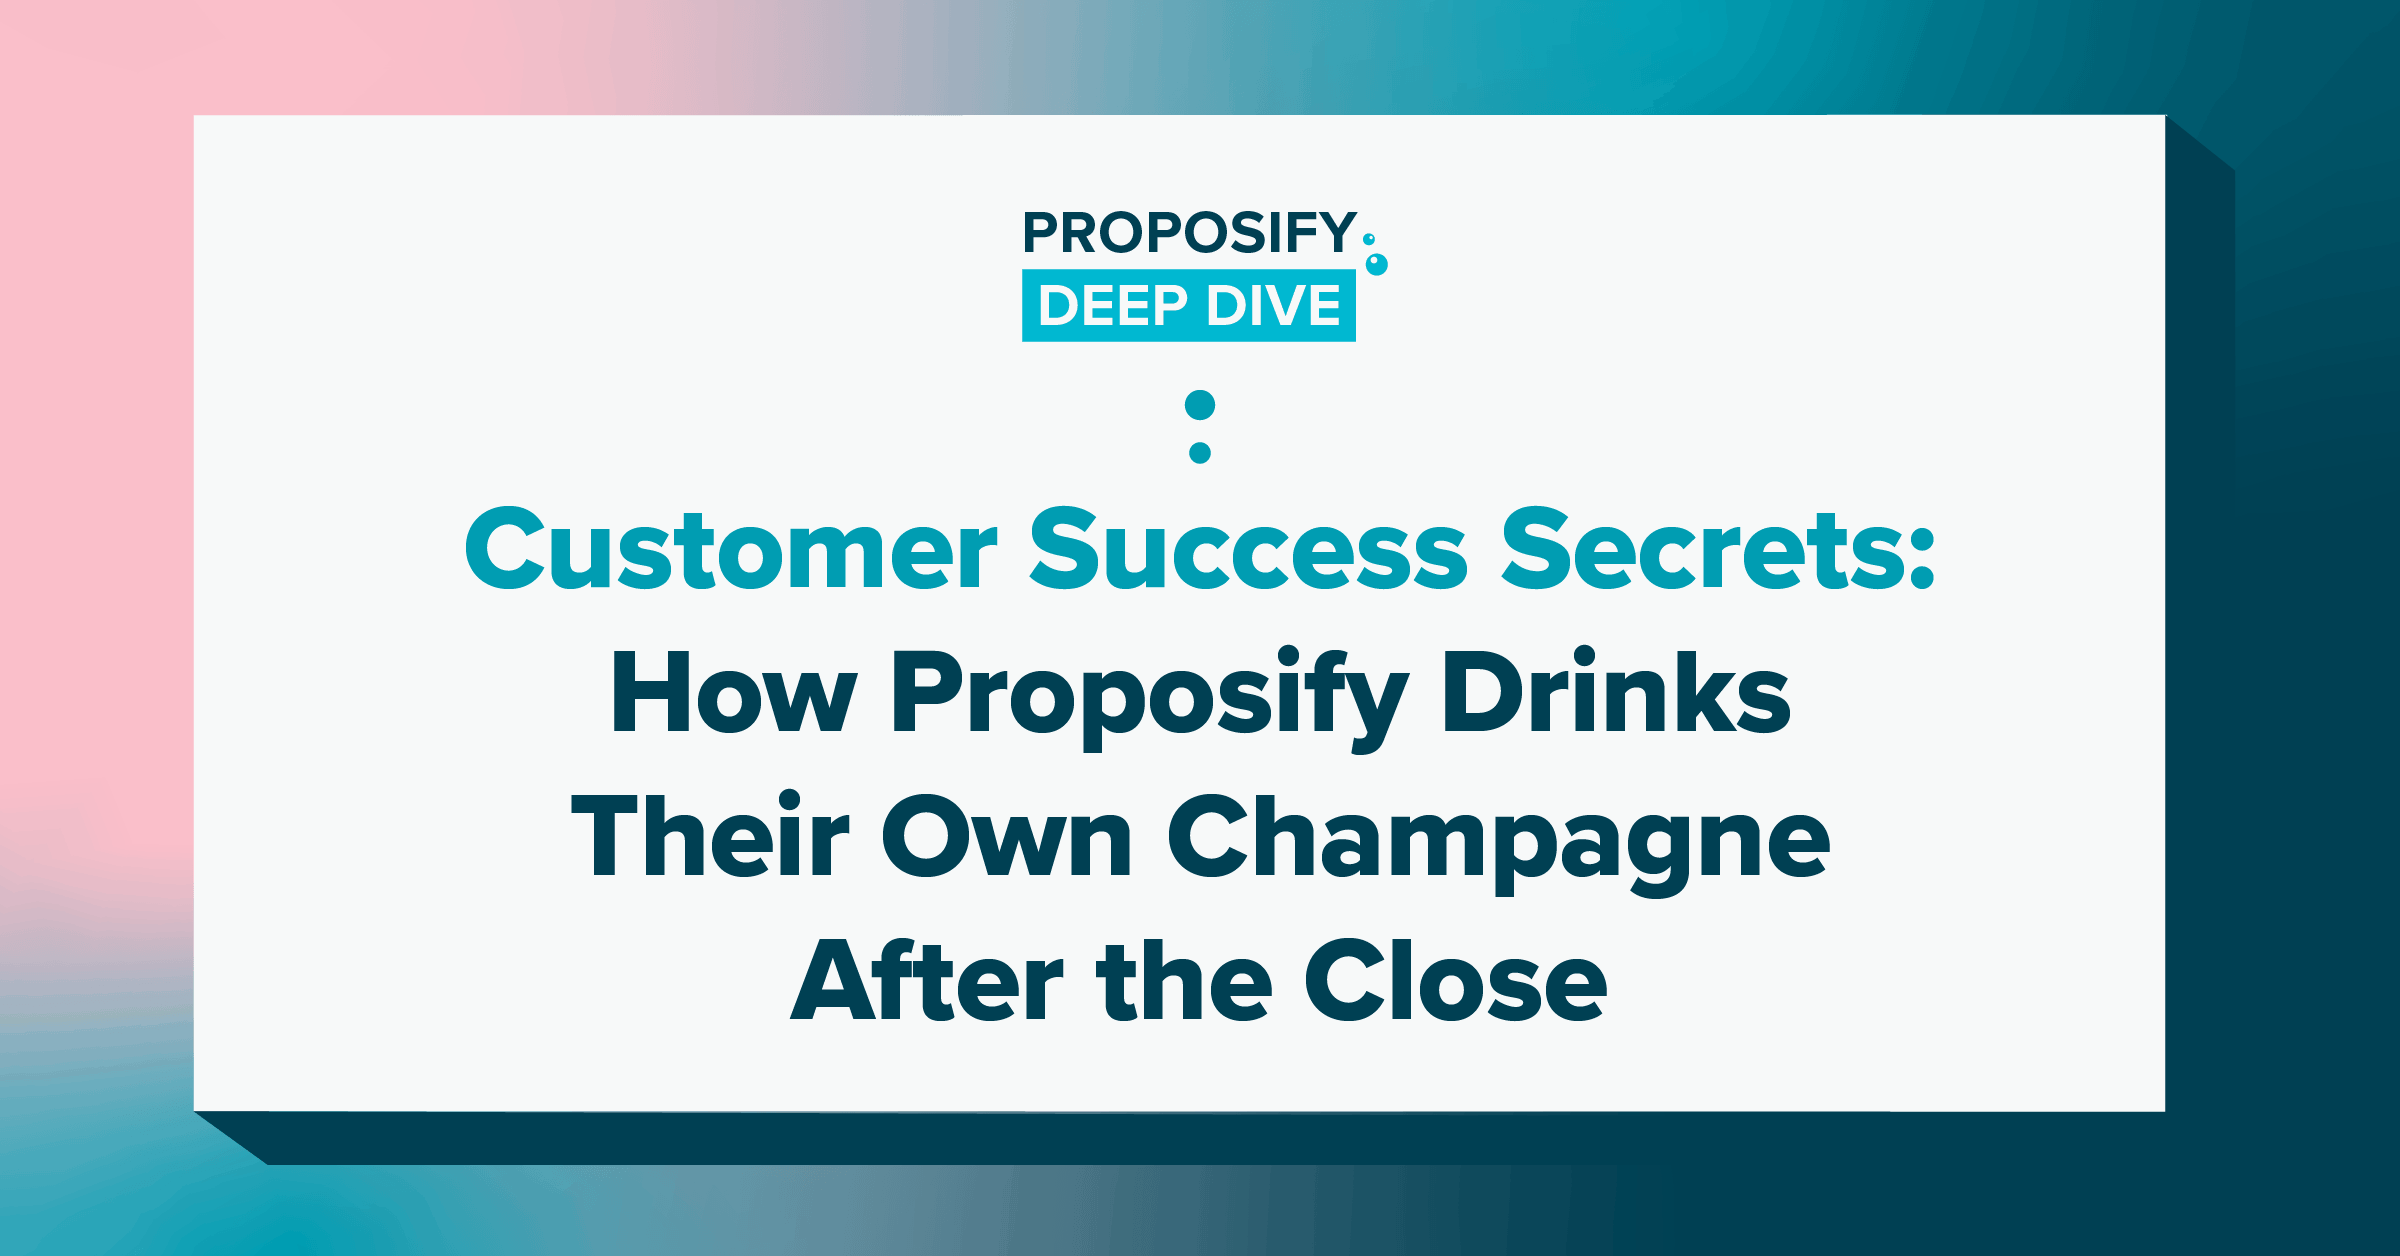 customer success secrets: how proposify drinks their own champagne after the close